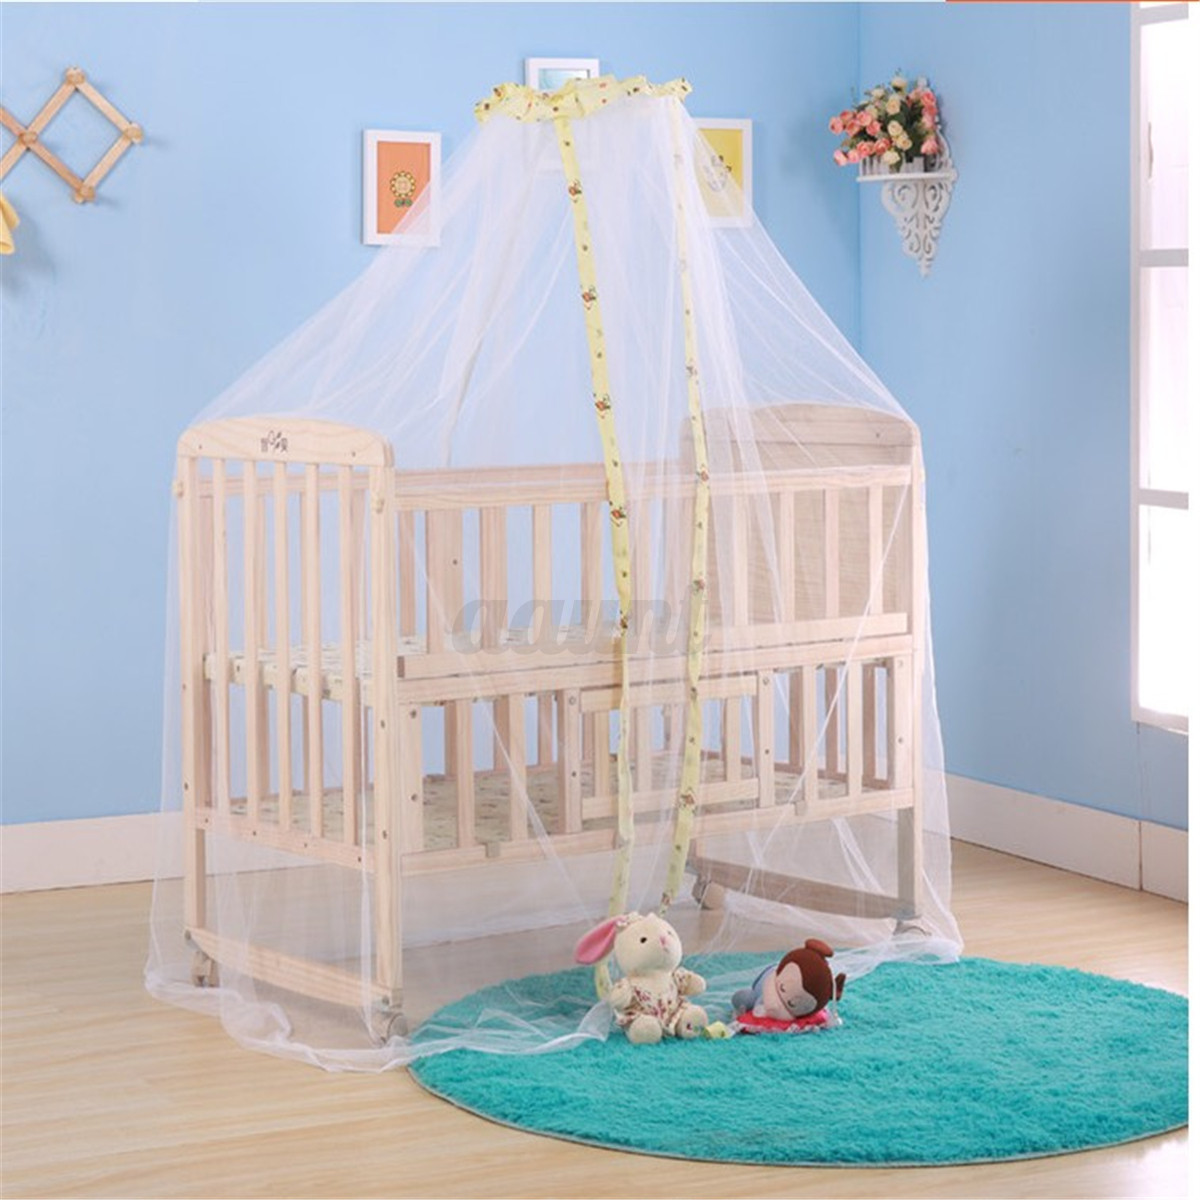 Baby summer dome mosquito net infant canopy toddler crib for Baby crib net